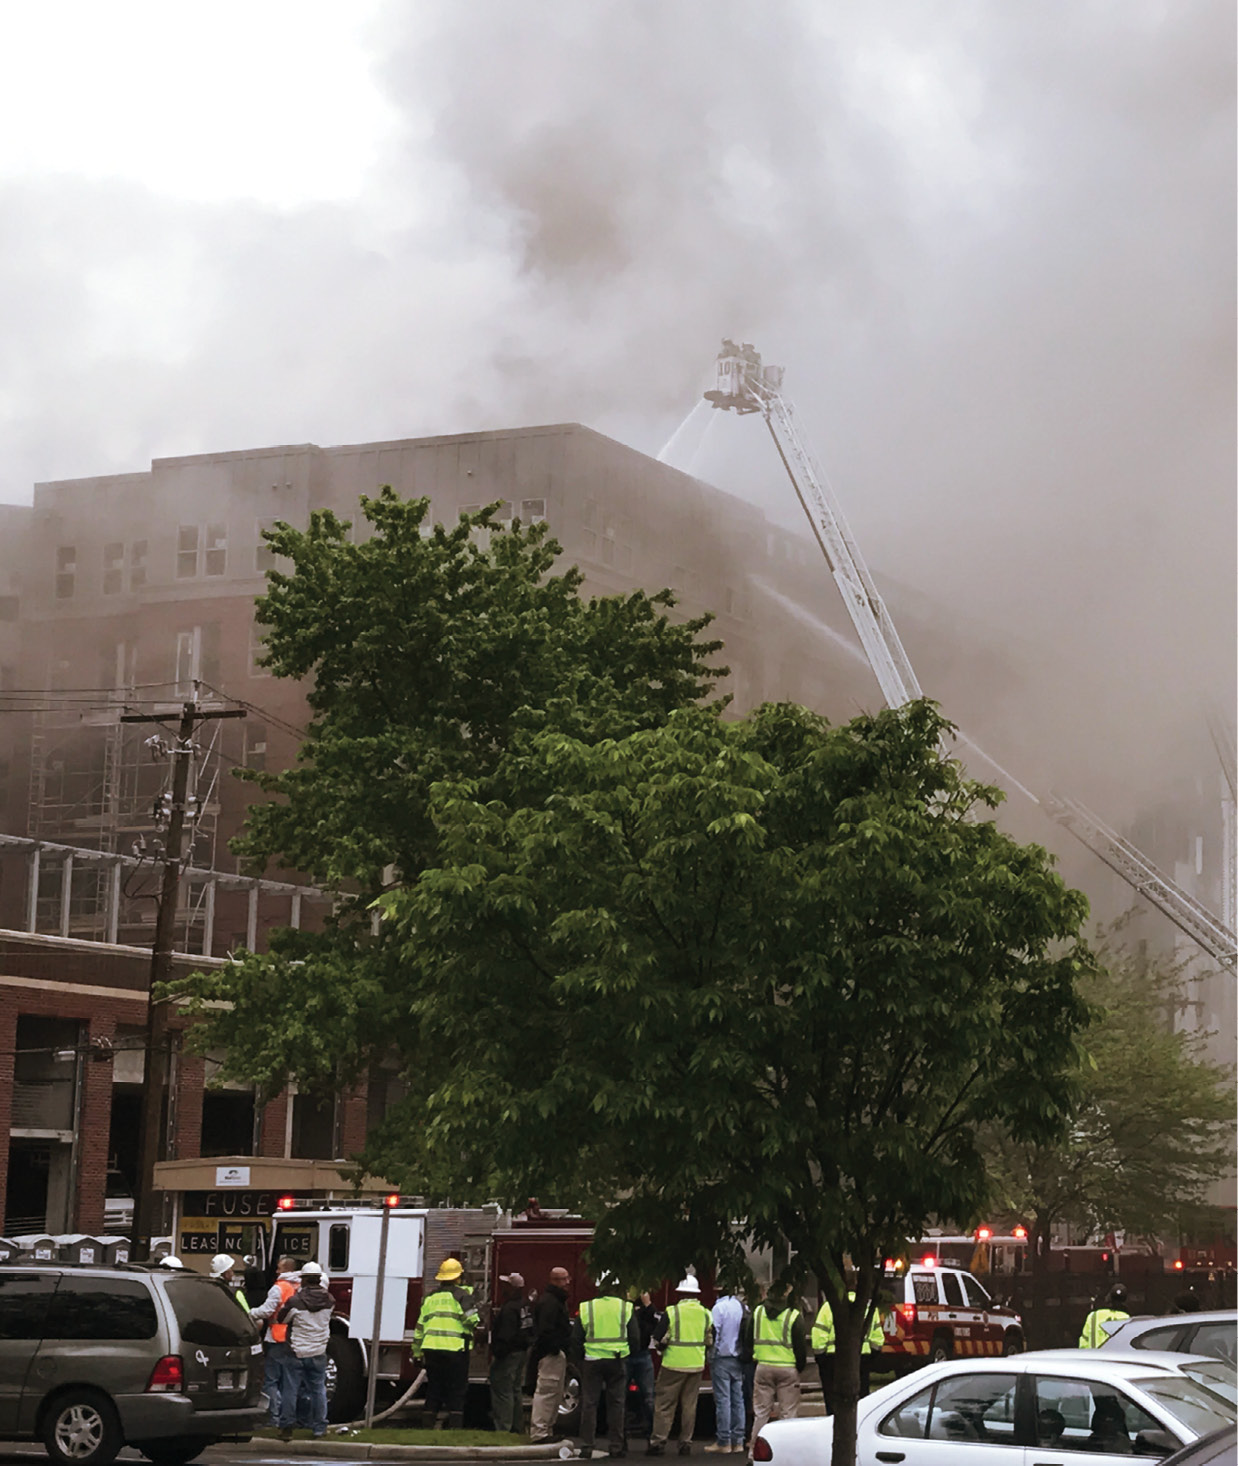 Firefighters battle a five-alarm blaze at a six-story apartment building under construction in Maryland.